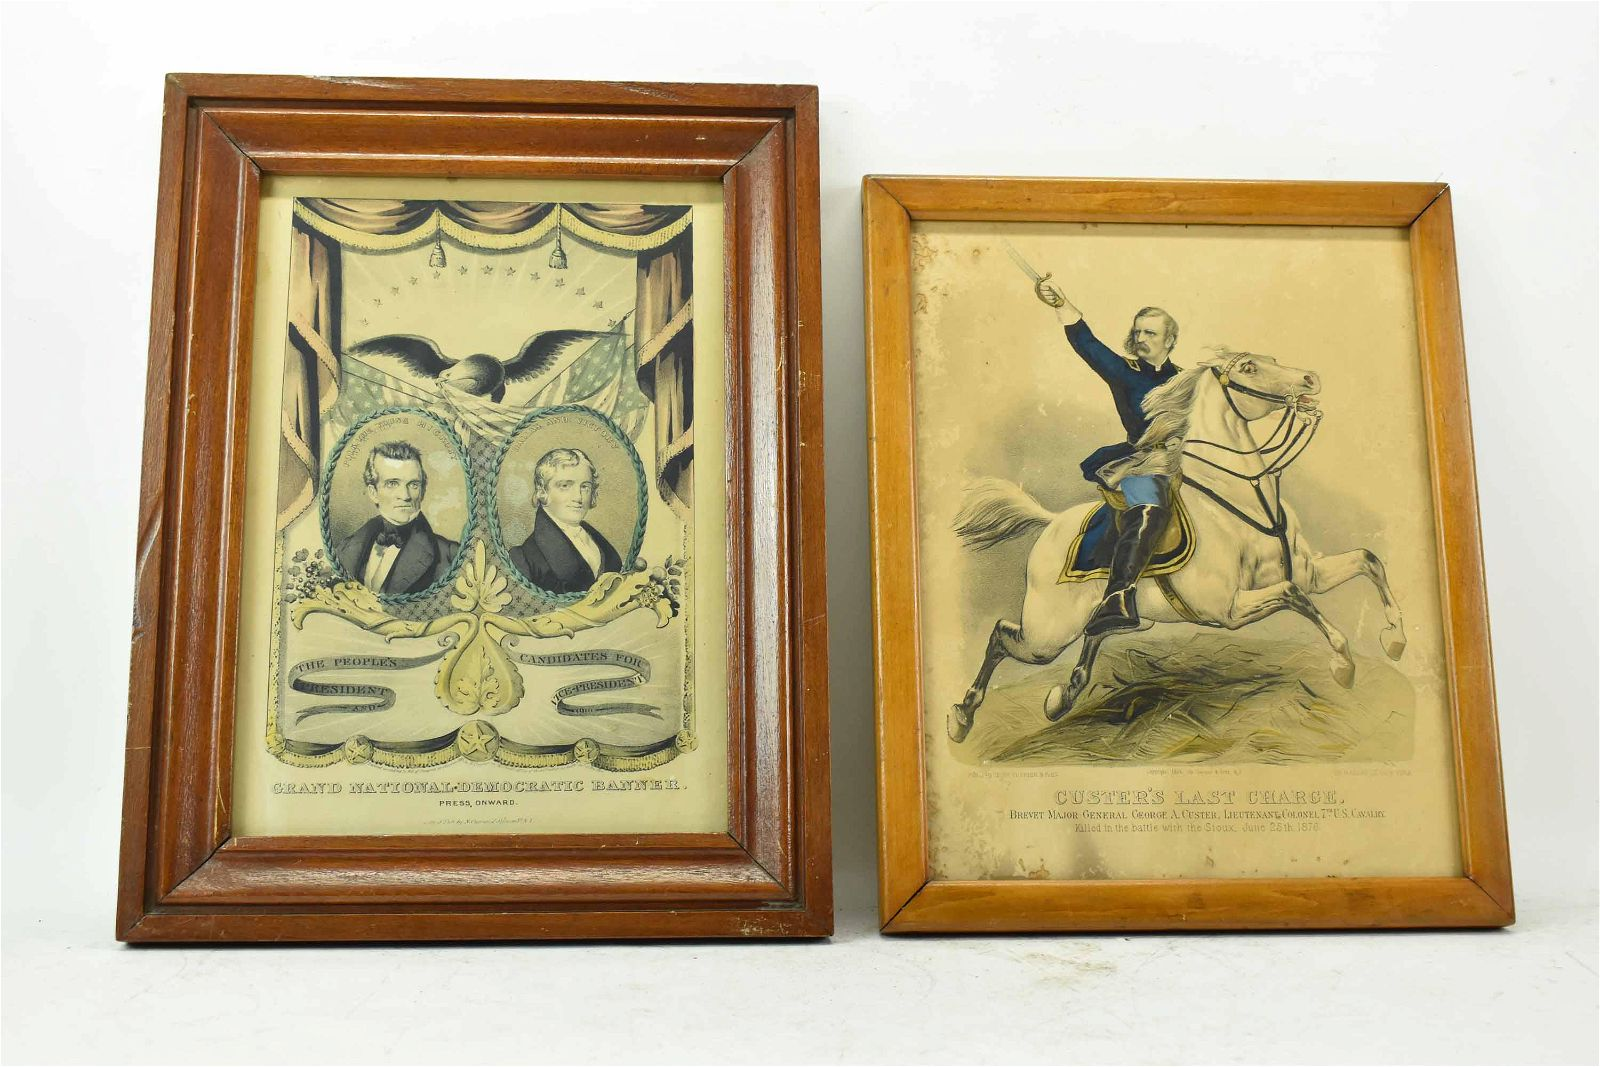 1876 Currier & Ives Custer's Last Charge Print